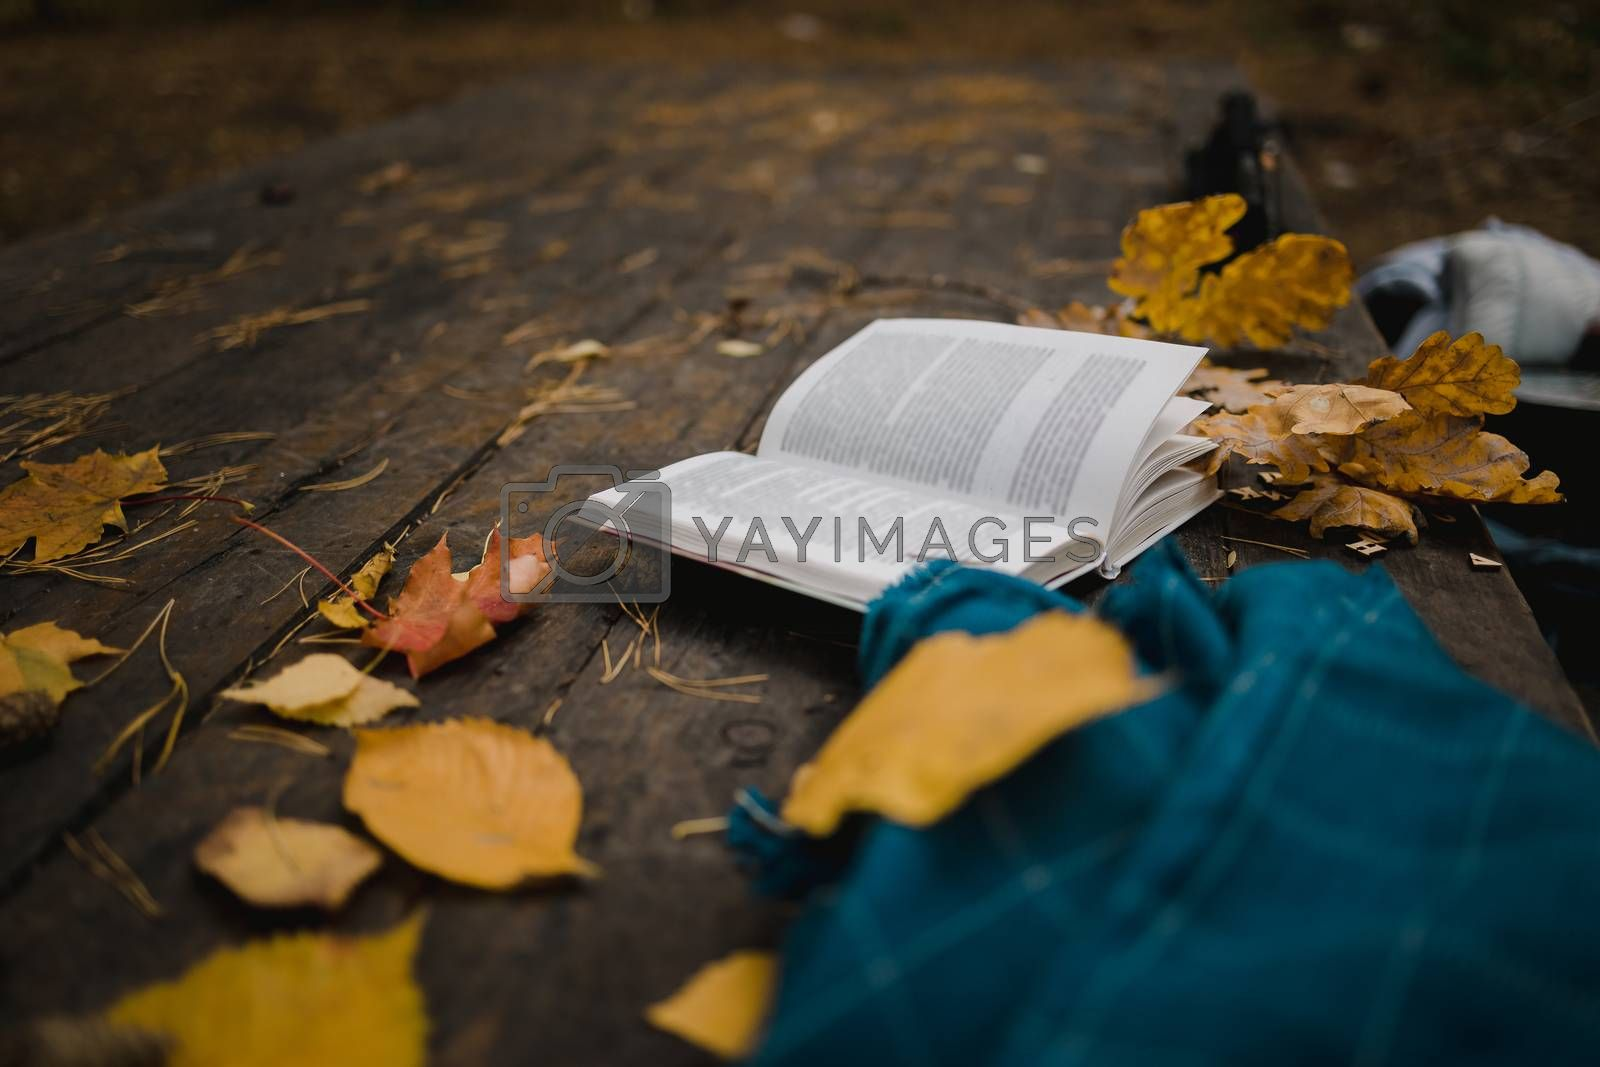 Royalty free image of On an old wooden table in an autumn park lies an open book, a blue plaid, a garland with lights, a cup of yellow leaves and sos cones. Top view, in blur. Autumn warm dark mood, soft focus. by Tanacha